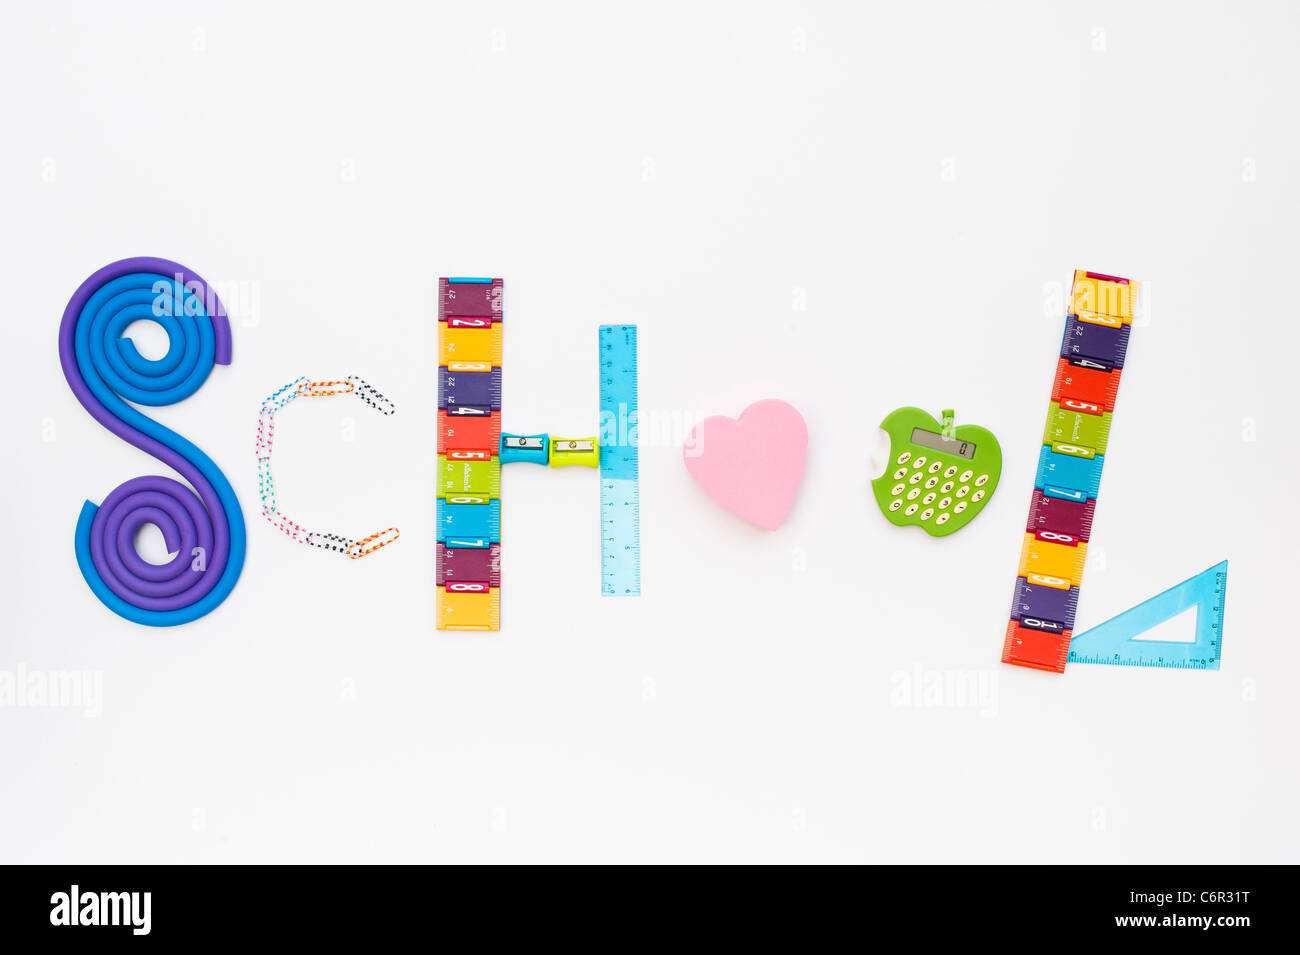 Word School using childrens school stationary on white background - Stock Image